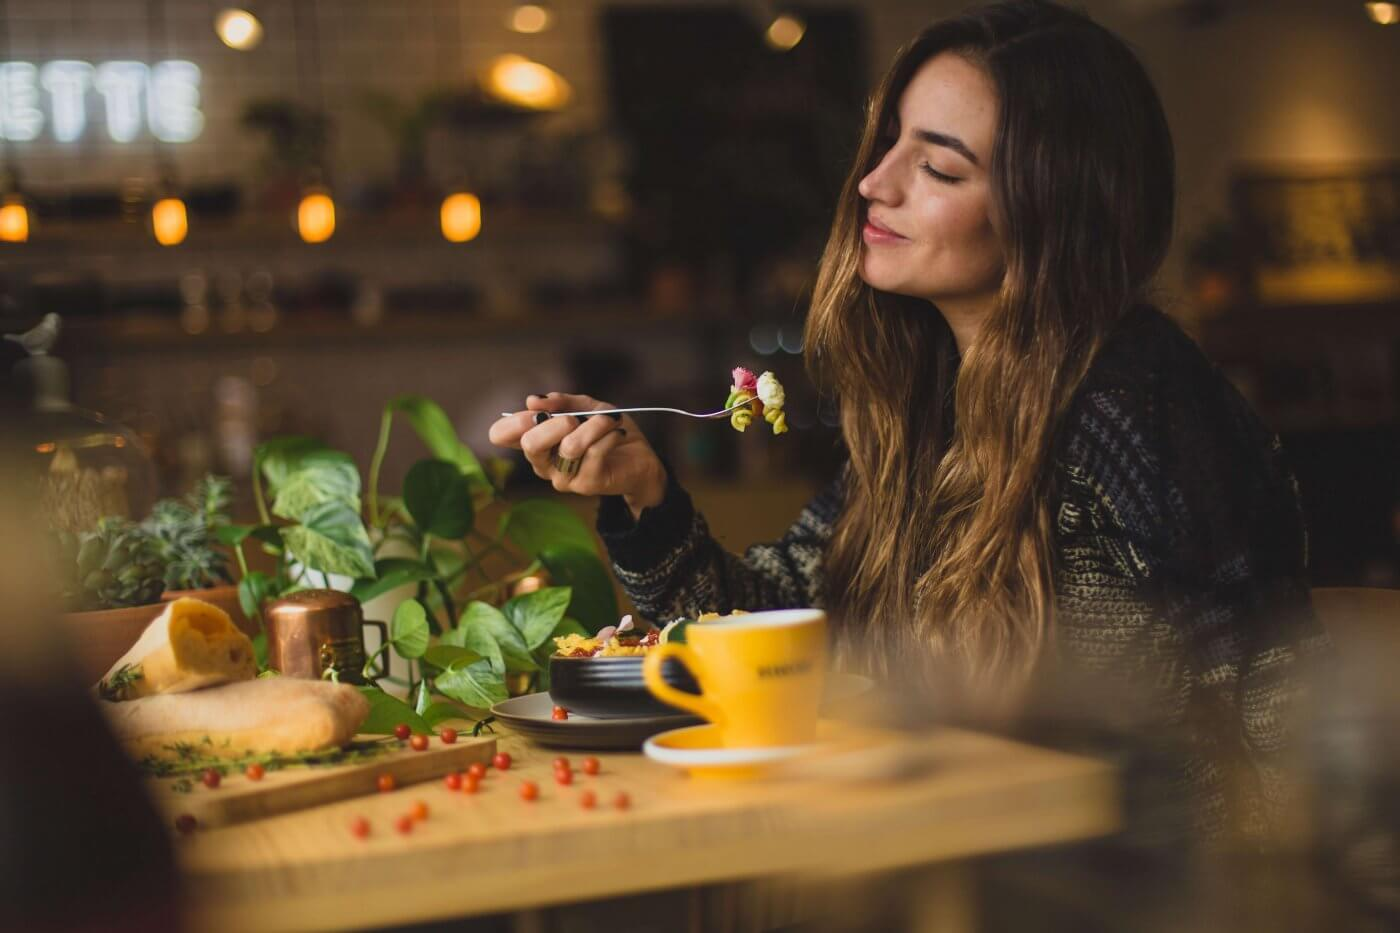 Women Eating Pasta | The Mustcard